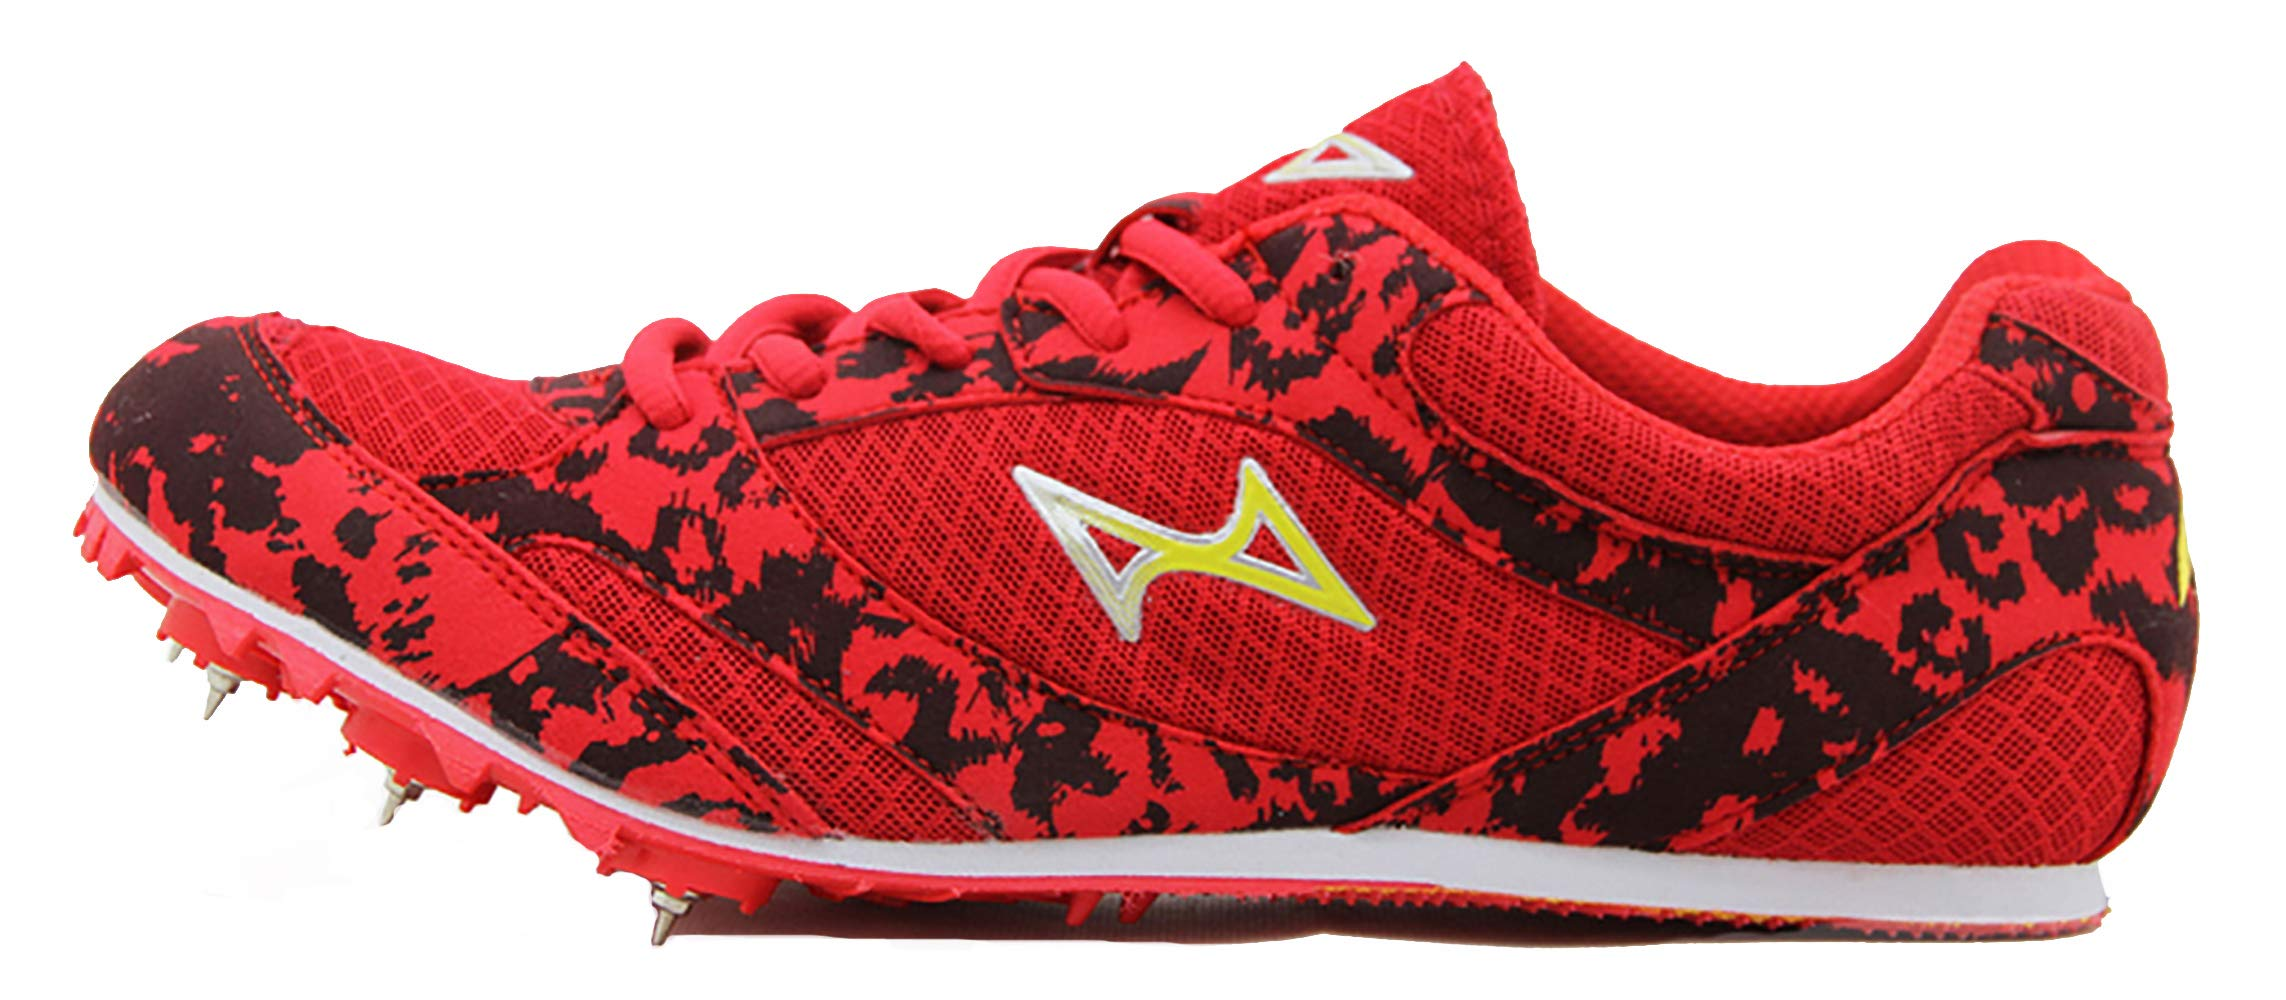 HEALTH Boy's Girl's Sprint Track & Field Shoes Spike Running Mesh Breathable Professional Sports Shoes 599